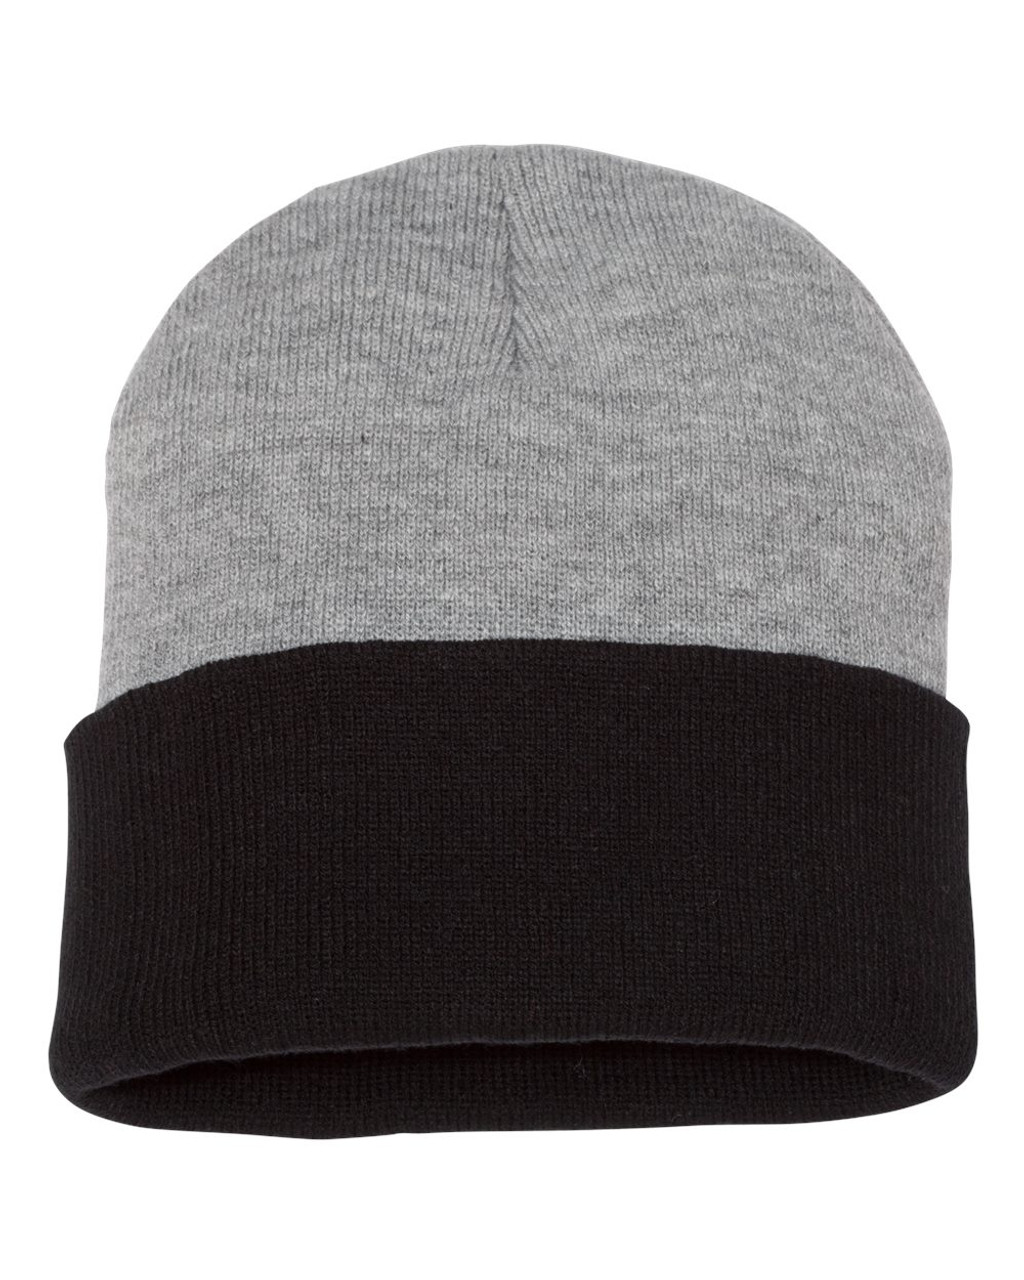 Heather/ Black - SP12T Sportsman 12 Inch Knit Beanie | T-shirt.ca